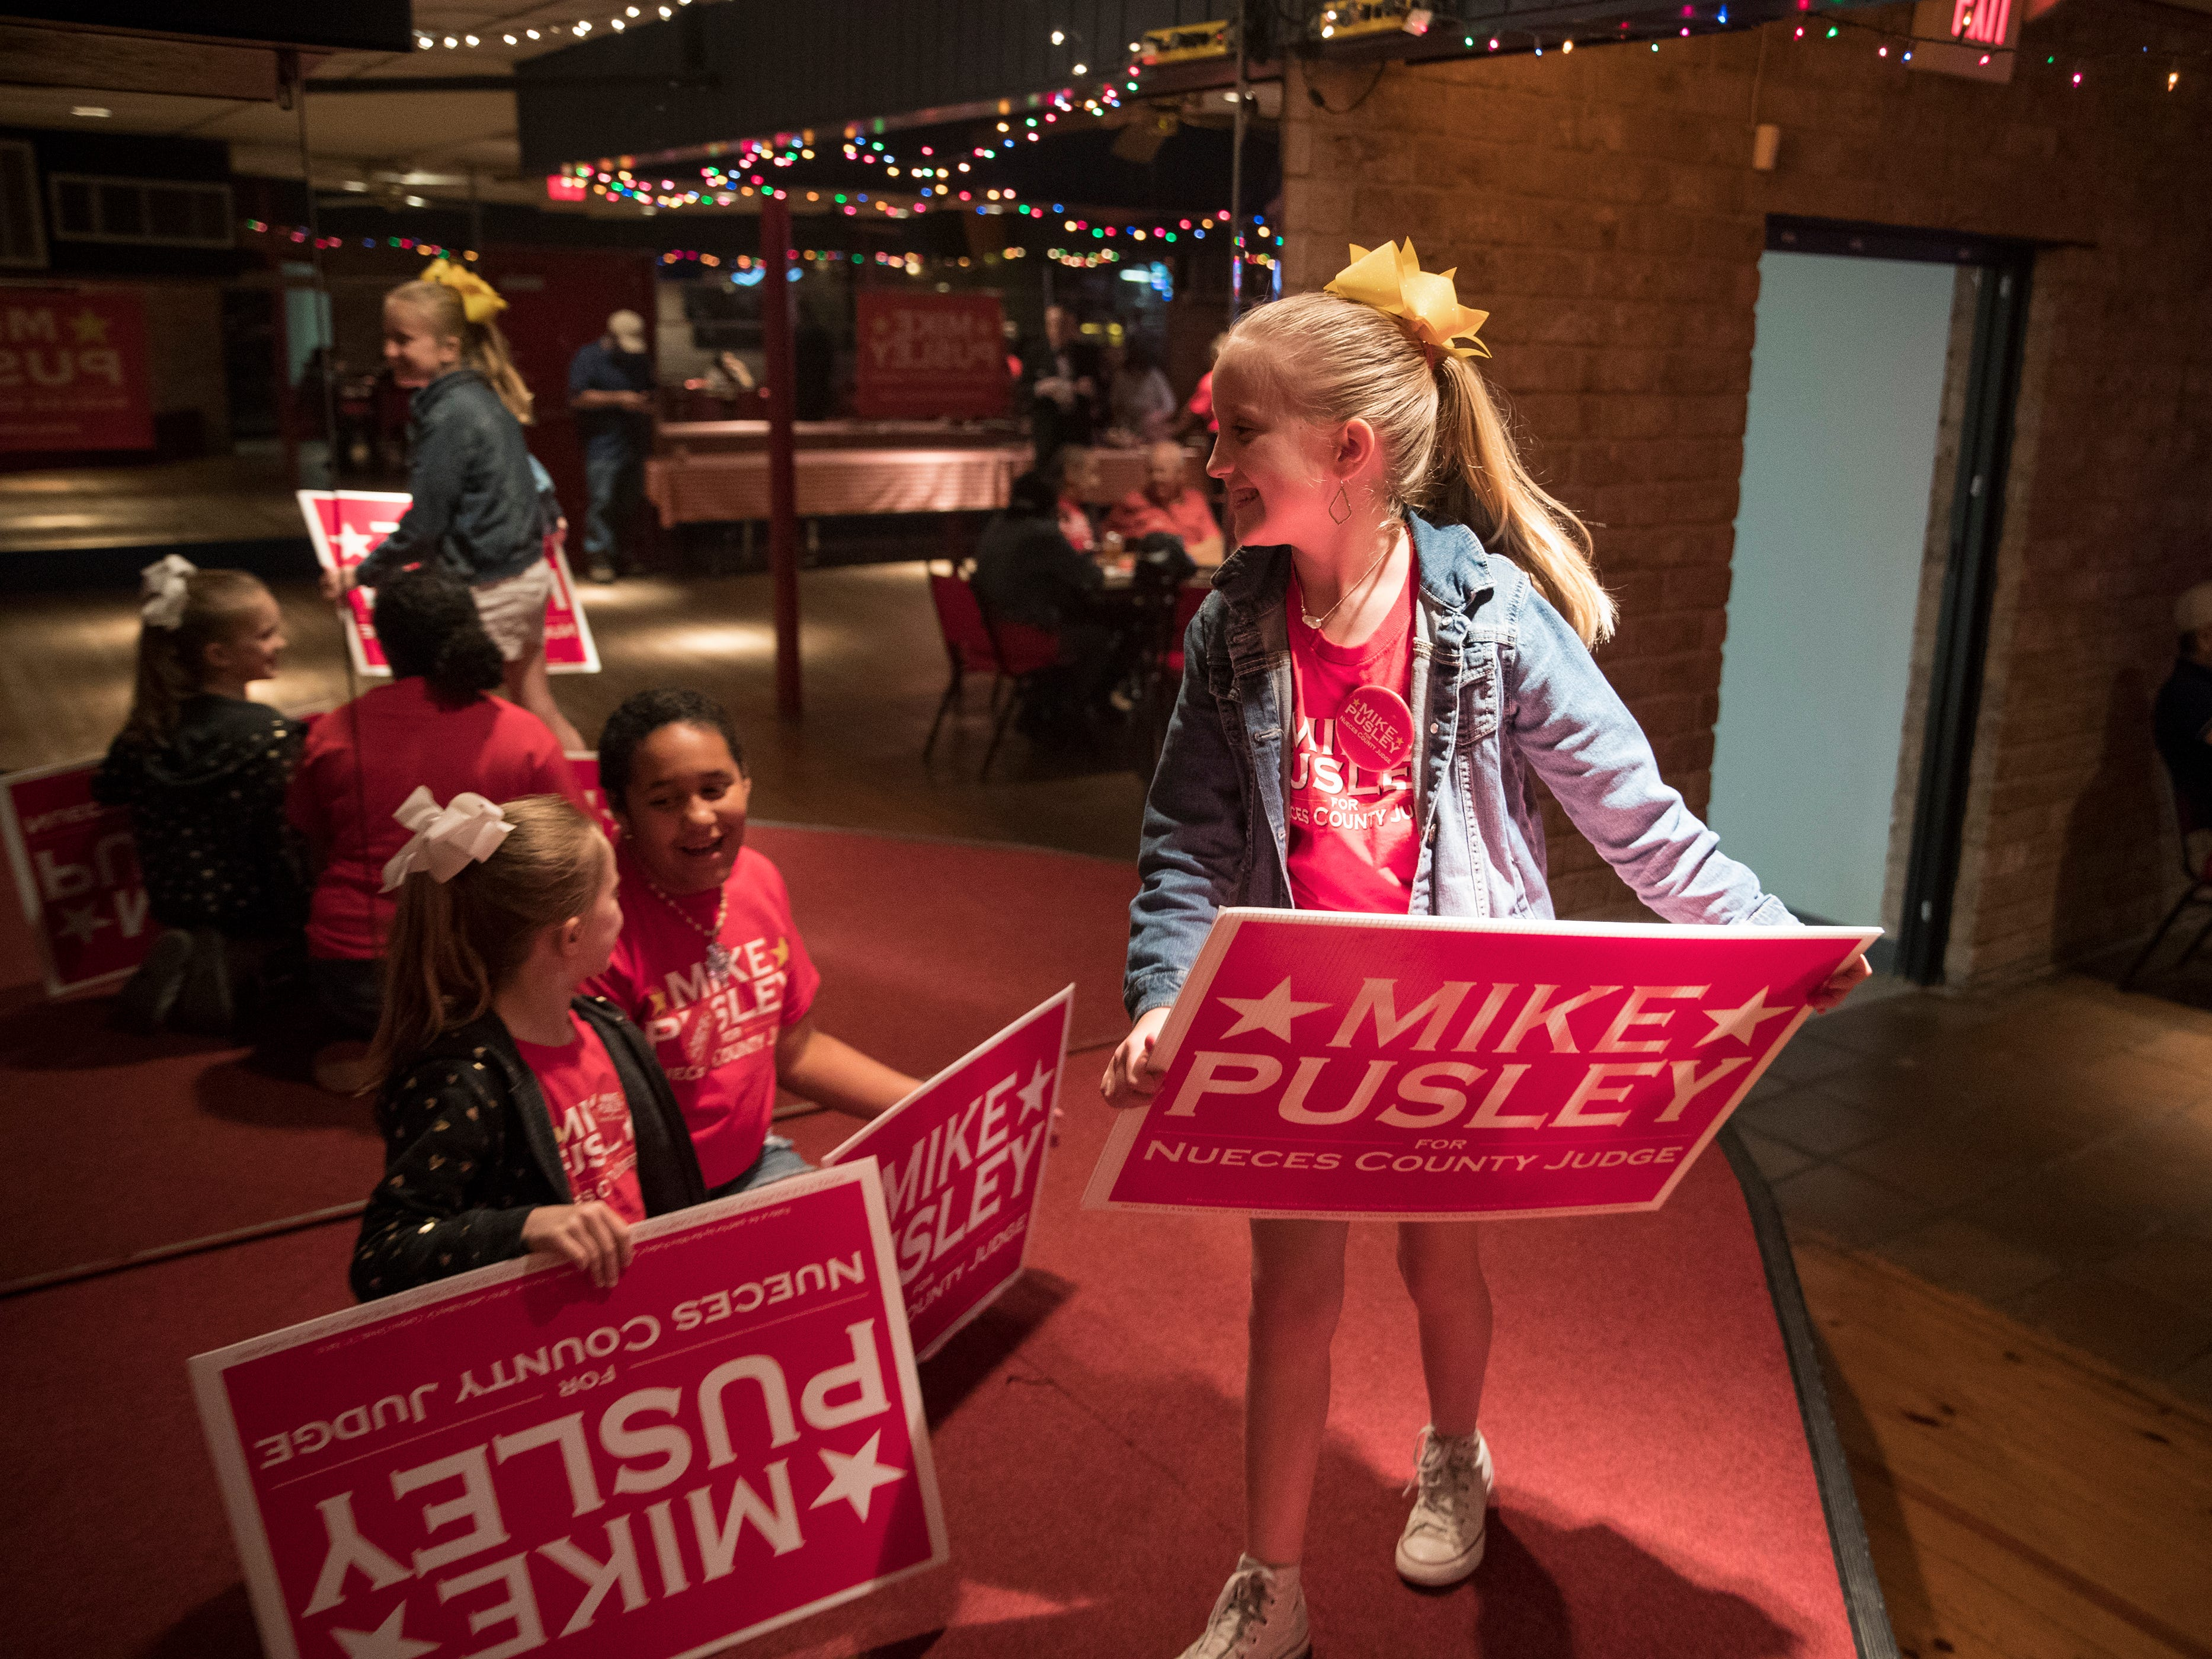 Kynleigh Tegeler (from left), 6, Kamryn Cleveland, 10, and Ryleigh Tegeler, 9, make up a cheer in support of Republican candidate for Nueces County Judge Mike Pusley at his watch party.